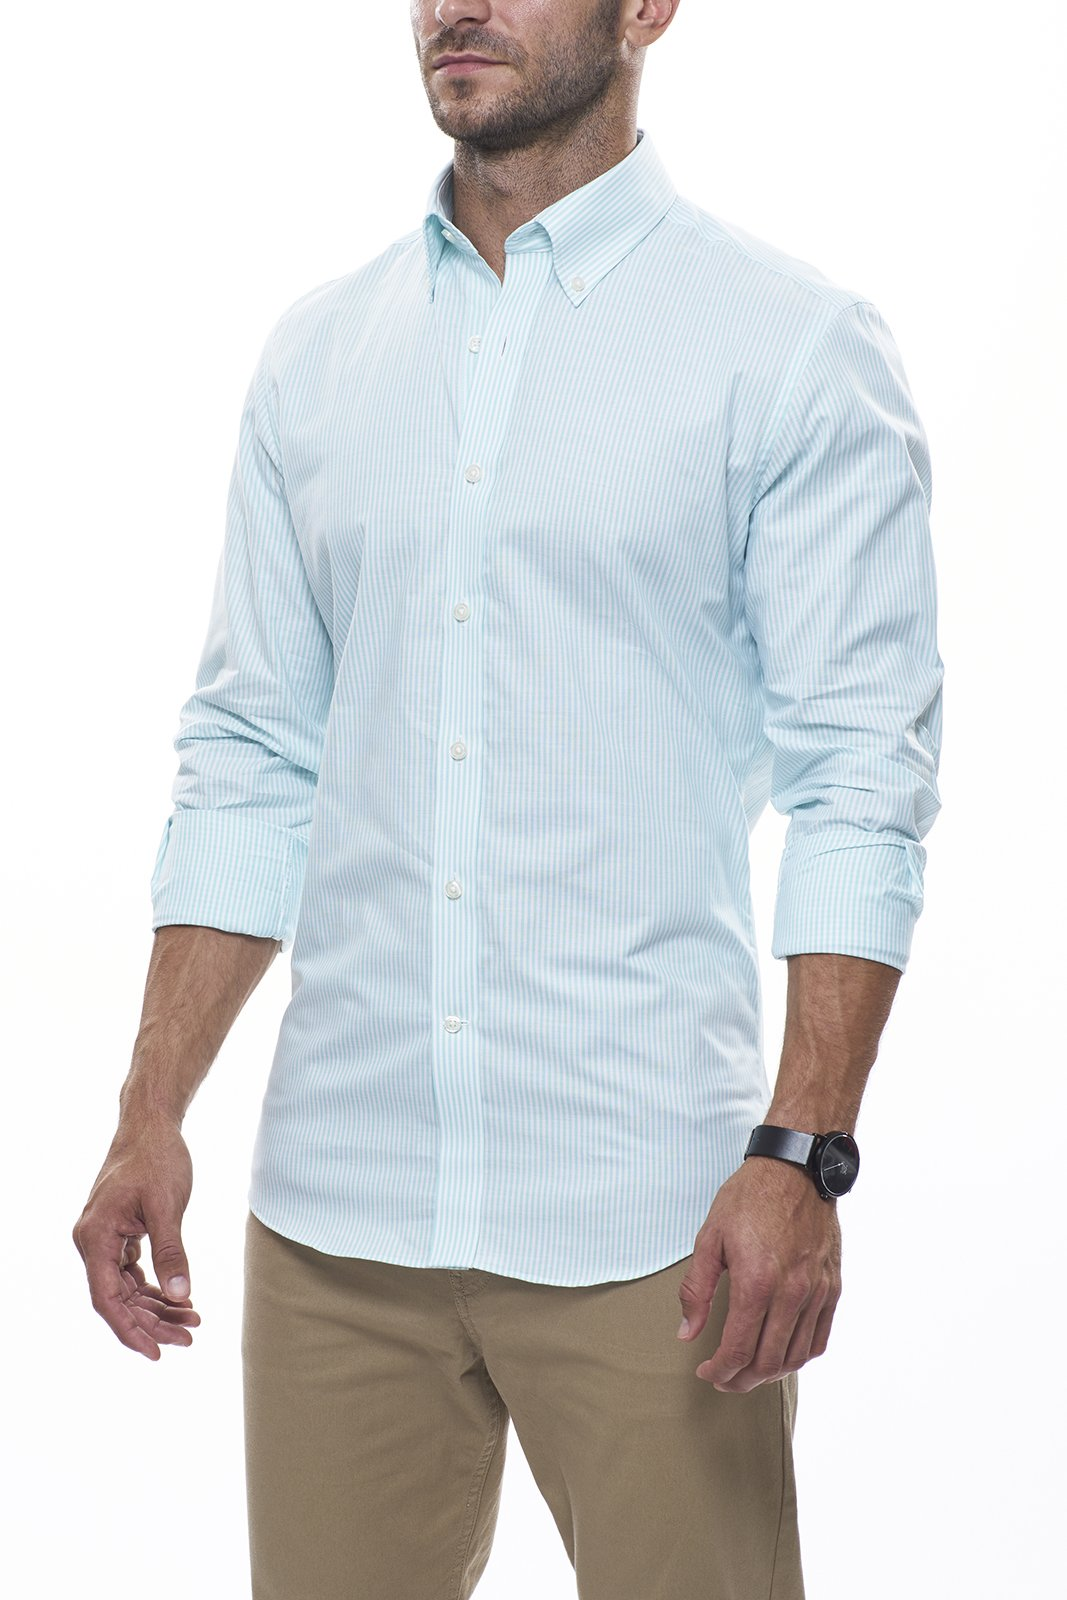 Seafoam Striped Oxford: Semi-Spread Collar, French Cuff